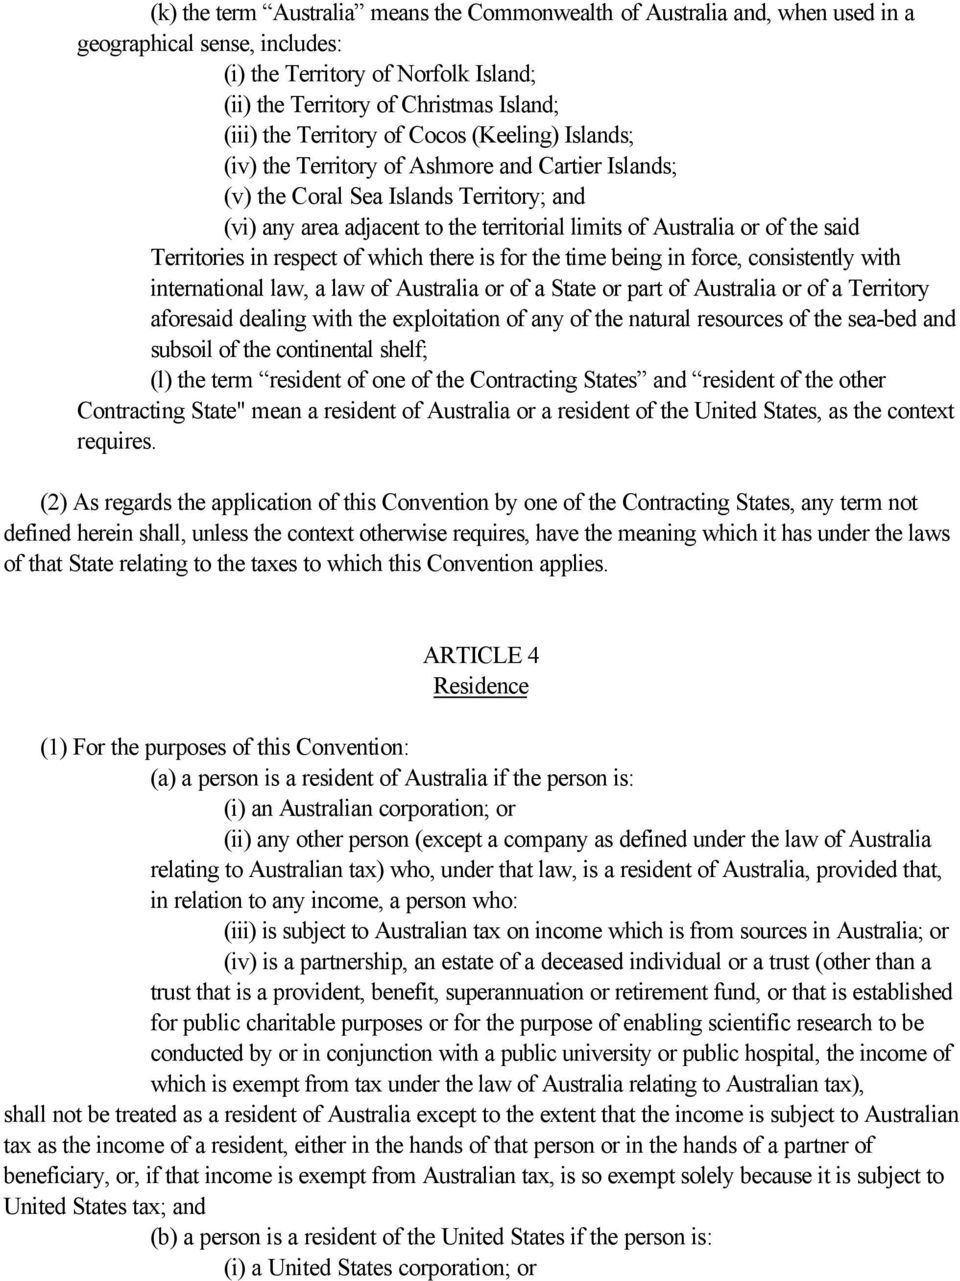 the said Territories in respect of which there is for the time being in force, consistently with international law, a law of Australia or of a State or part of Australia or of a Territory aforesaid